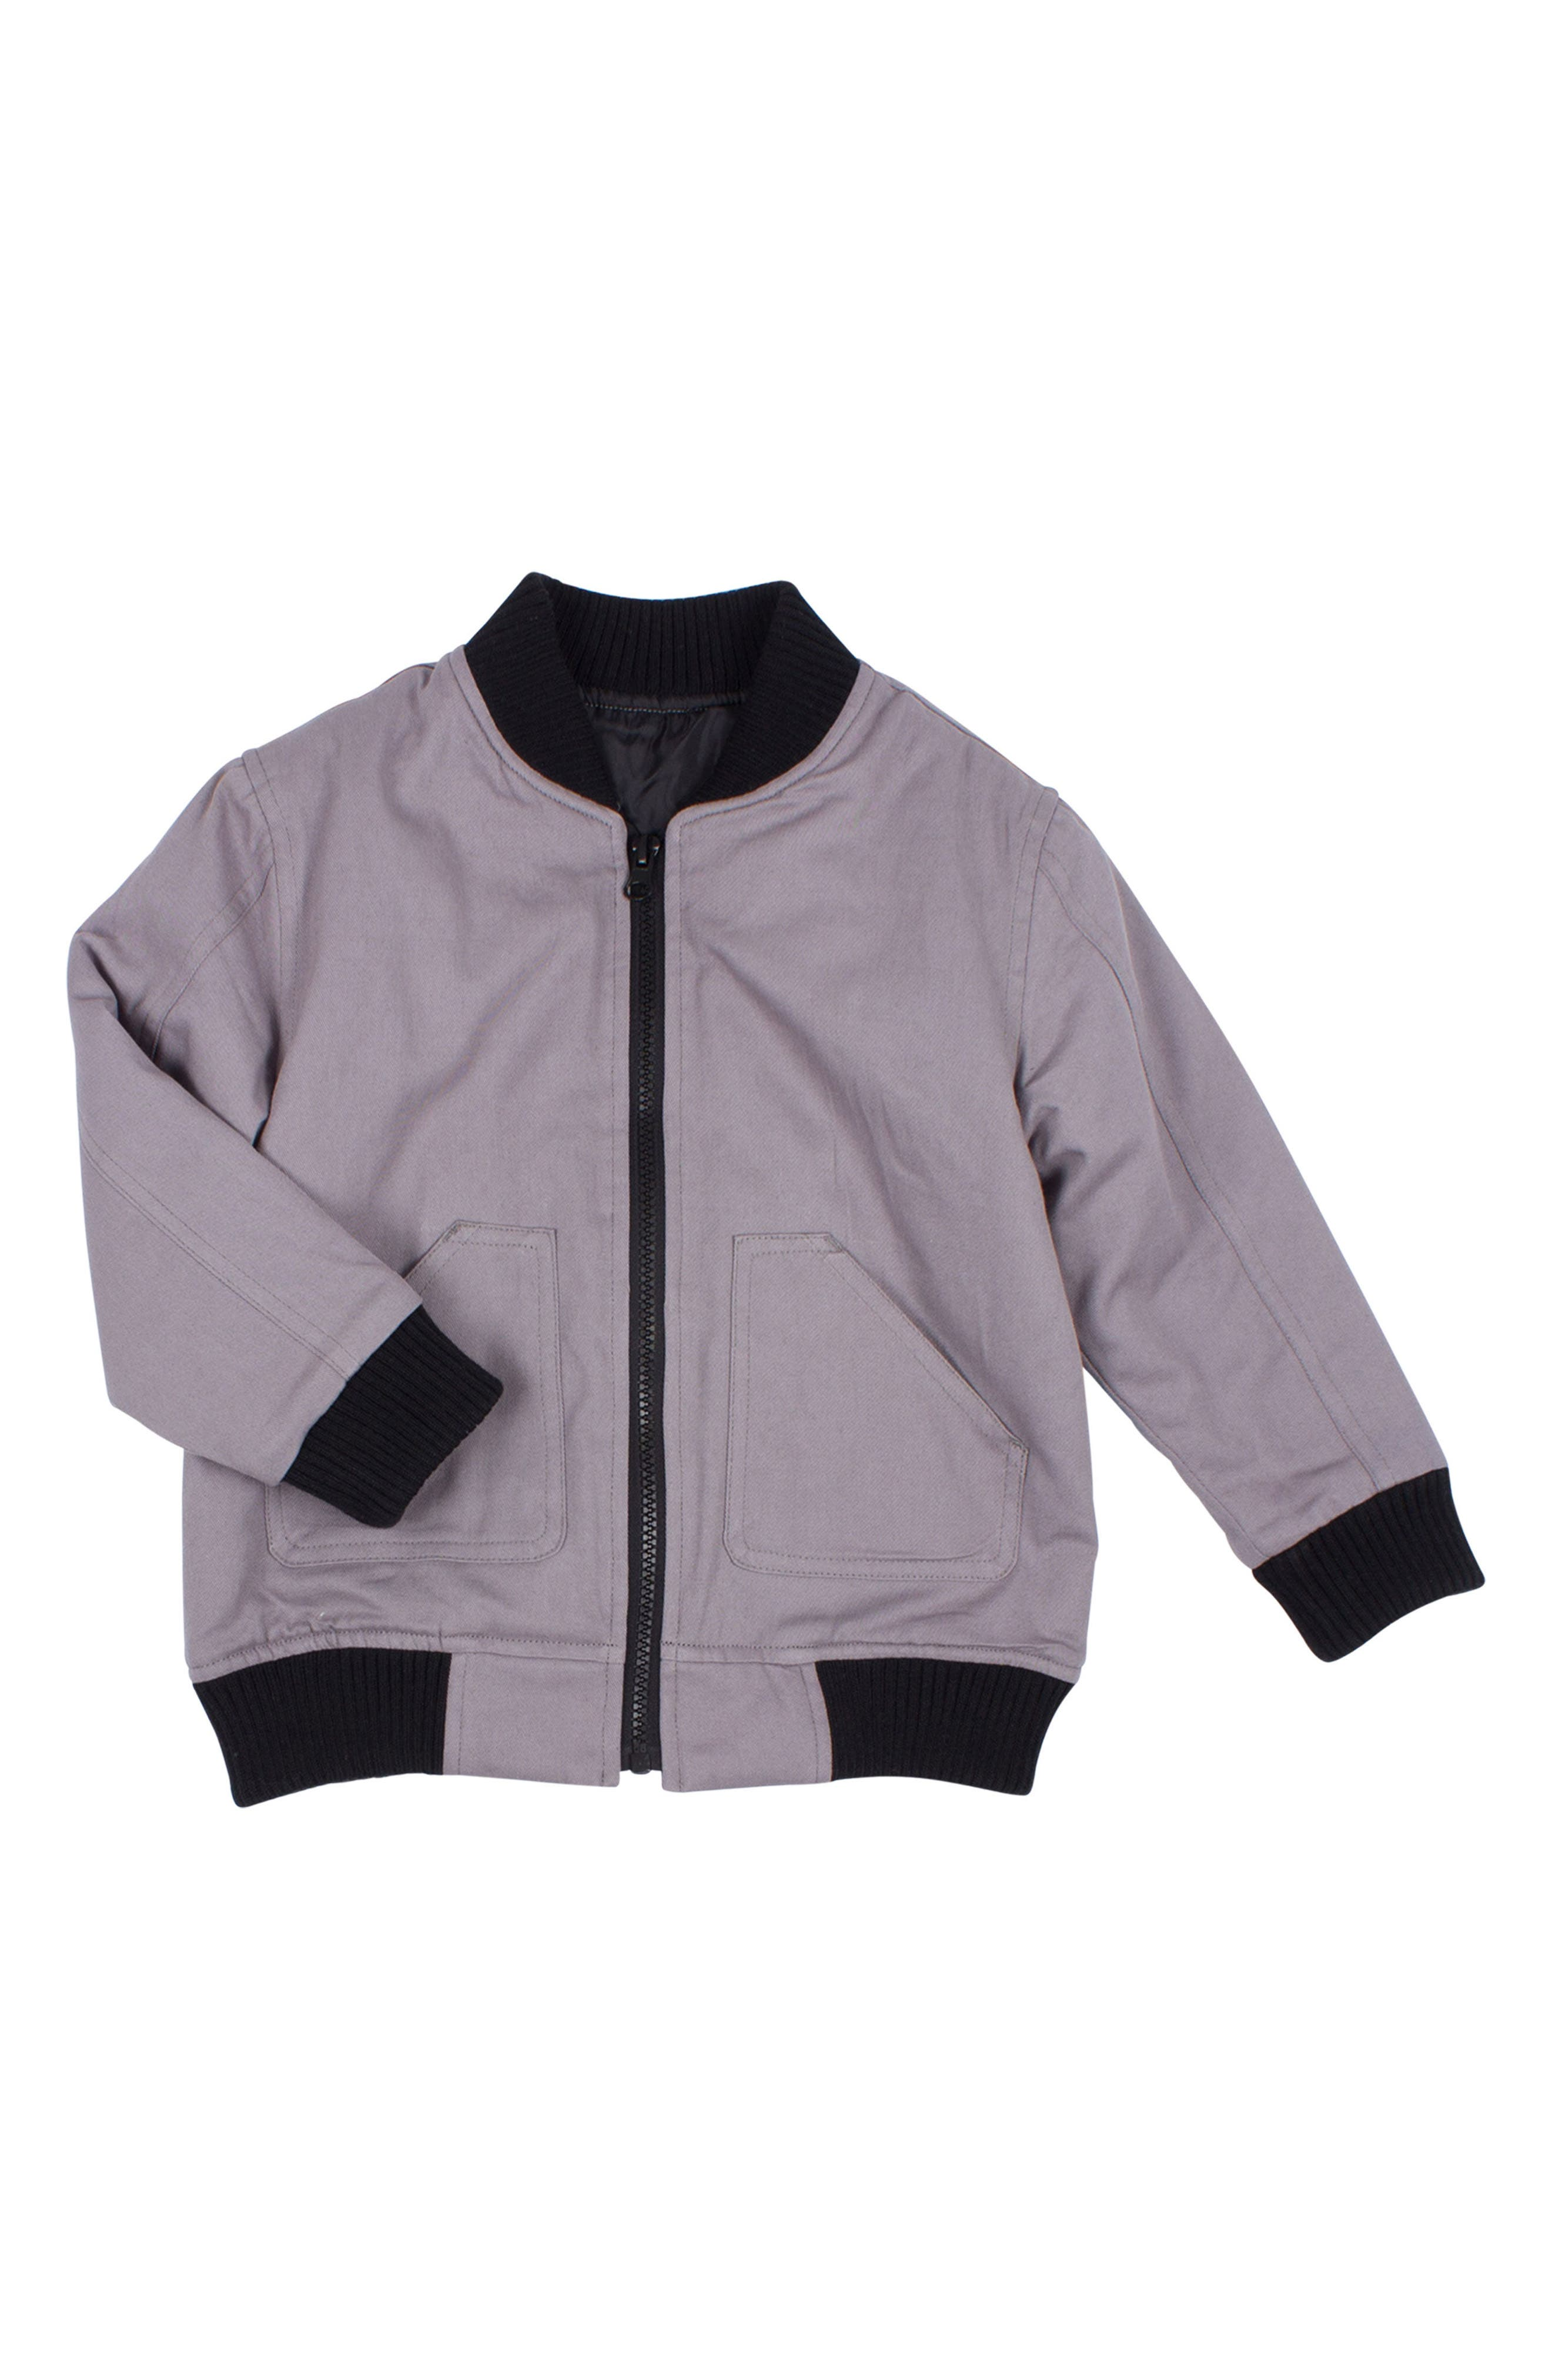 Check You Later Bomber Jacket,                         Main,                         color, Grey